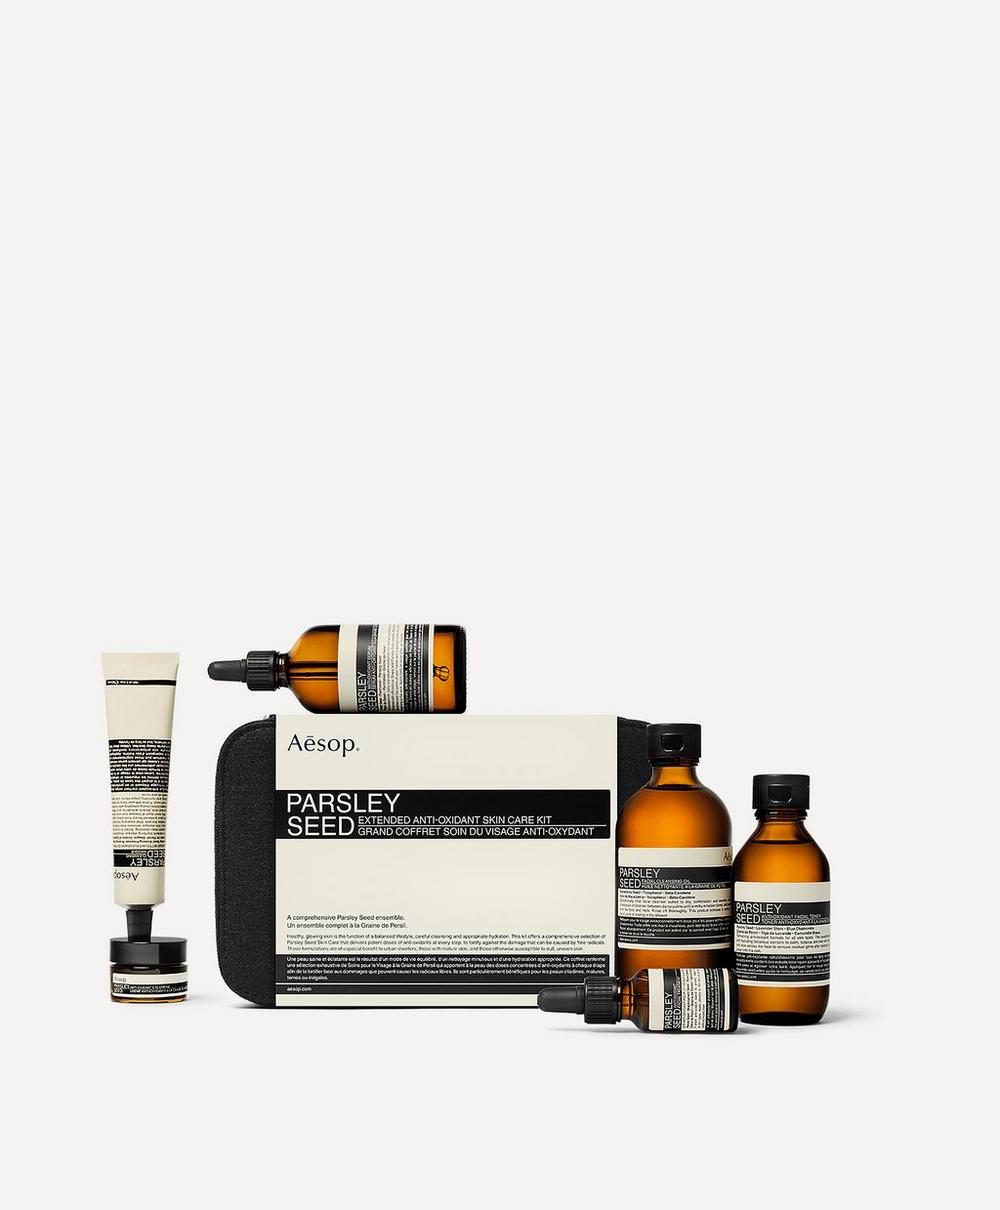 Aesop - Parsley Seed Extended Anti-Oxidant Skin Care Kit